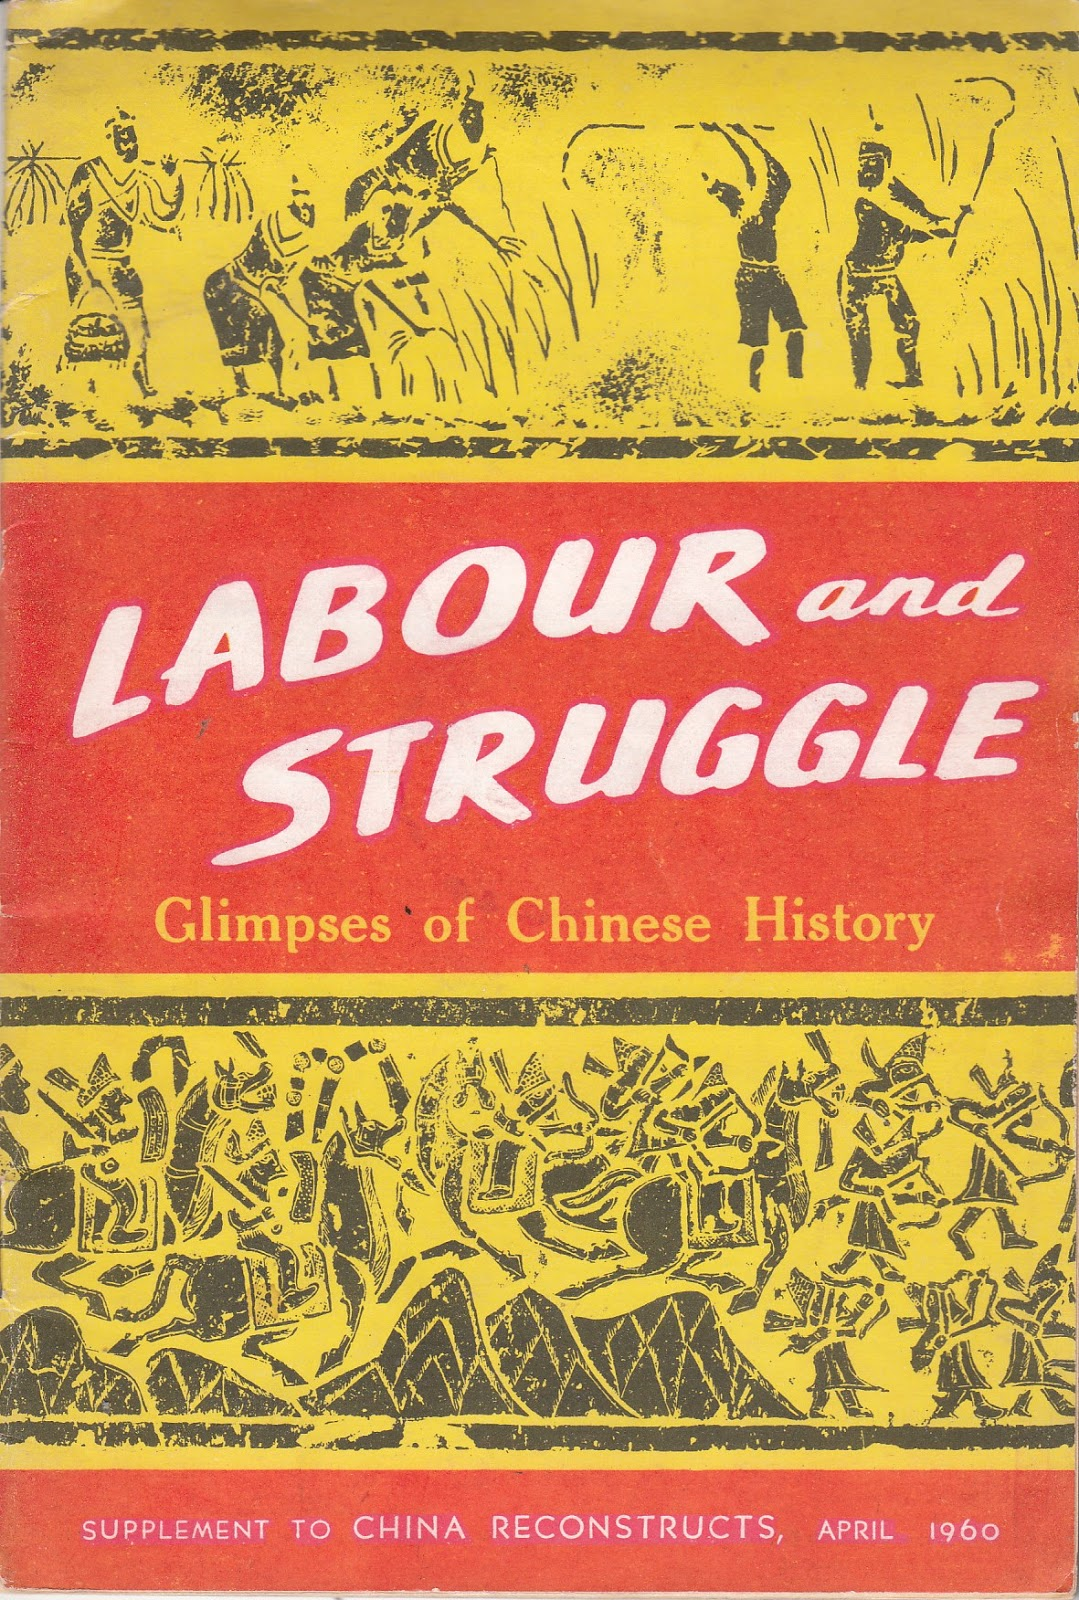 Labour and Struggle: Glimpses of Chinese History